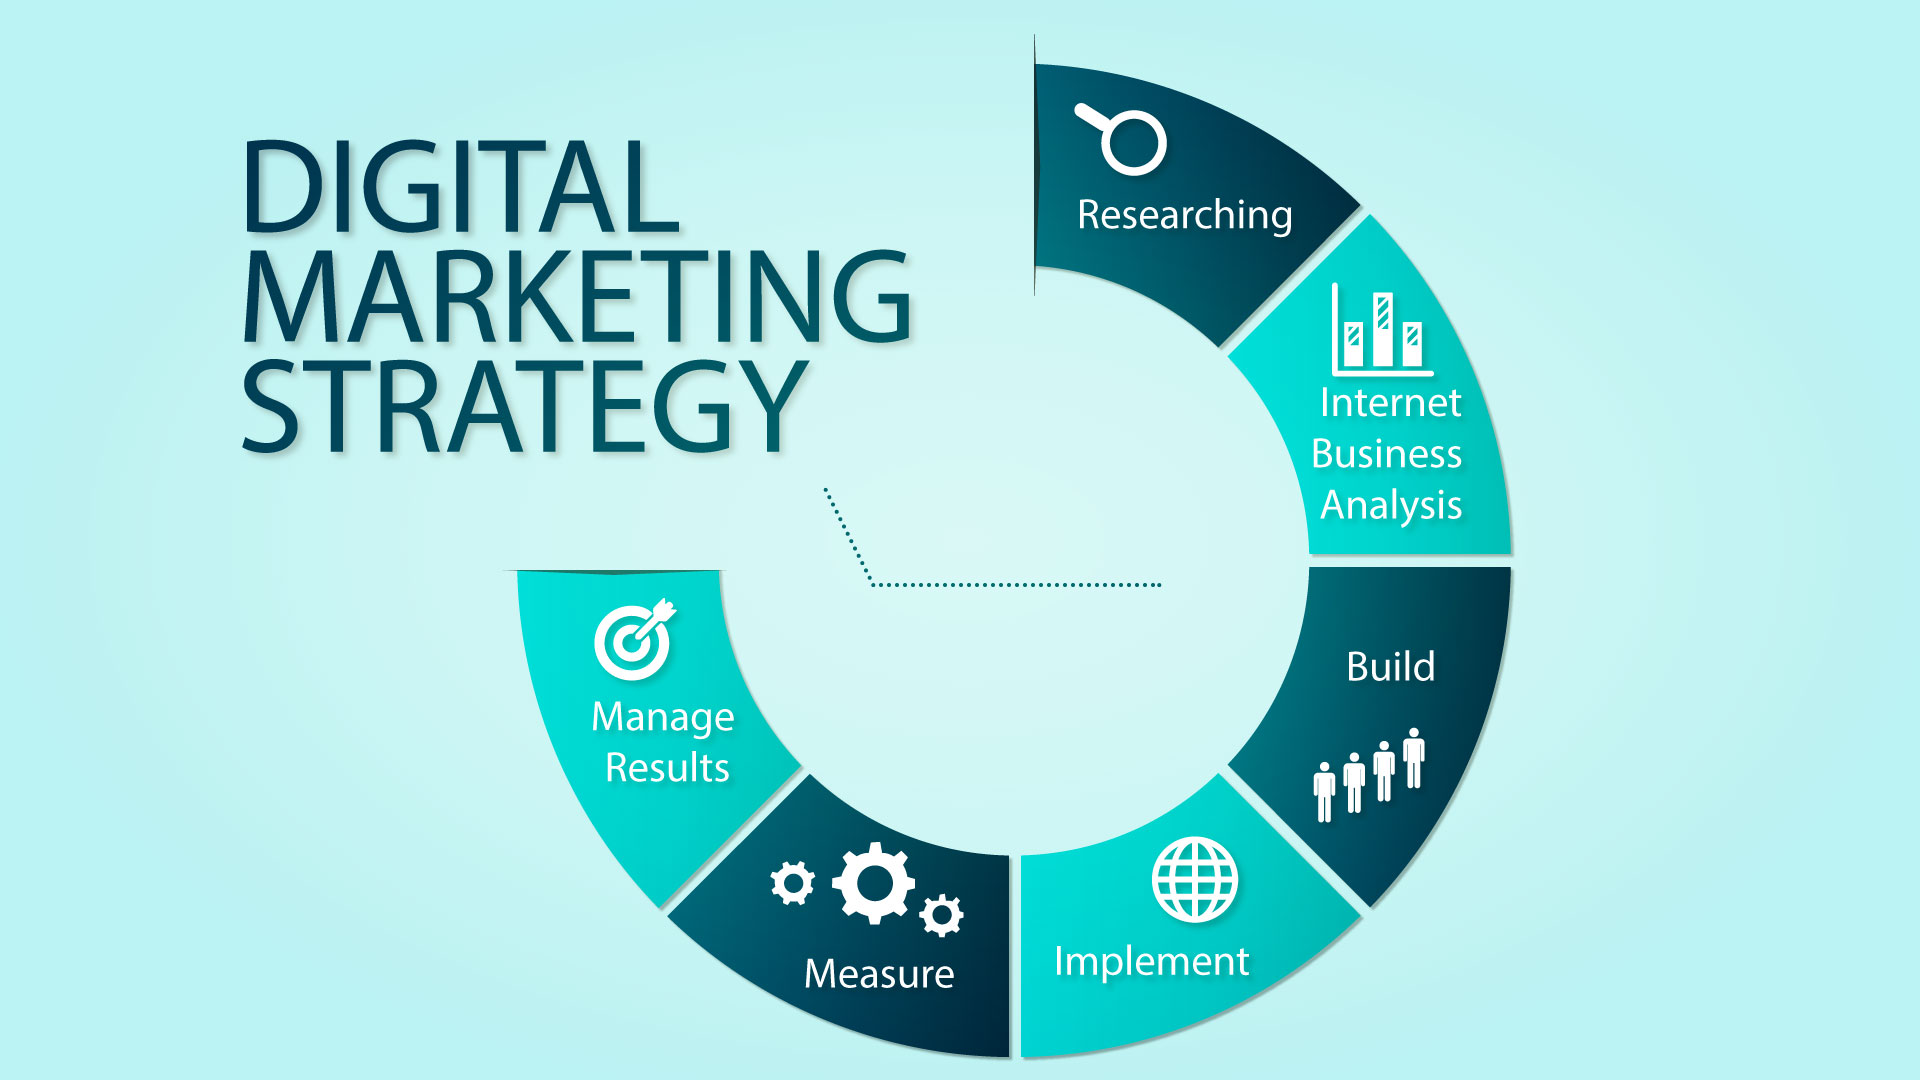 digital-marketing-strategy-framework1.jpg